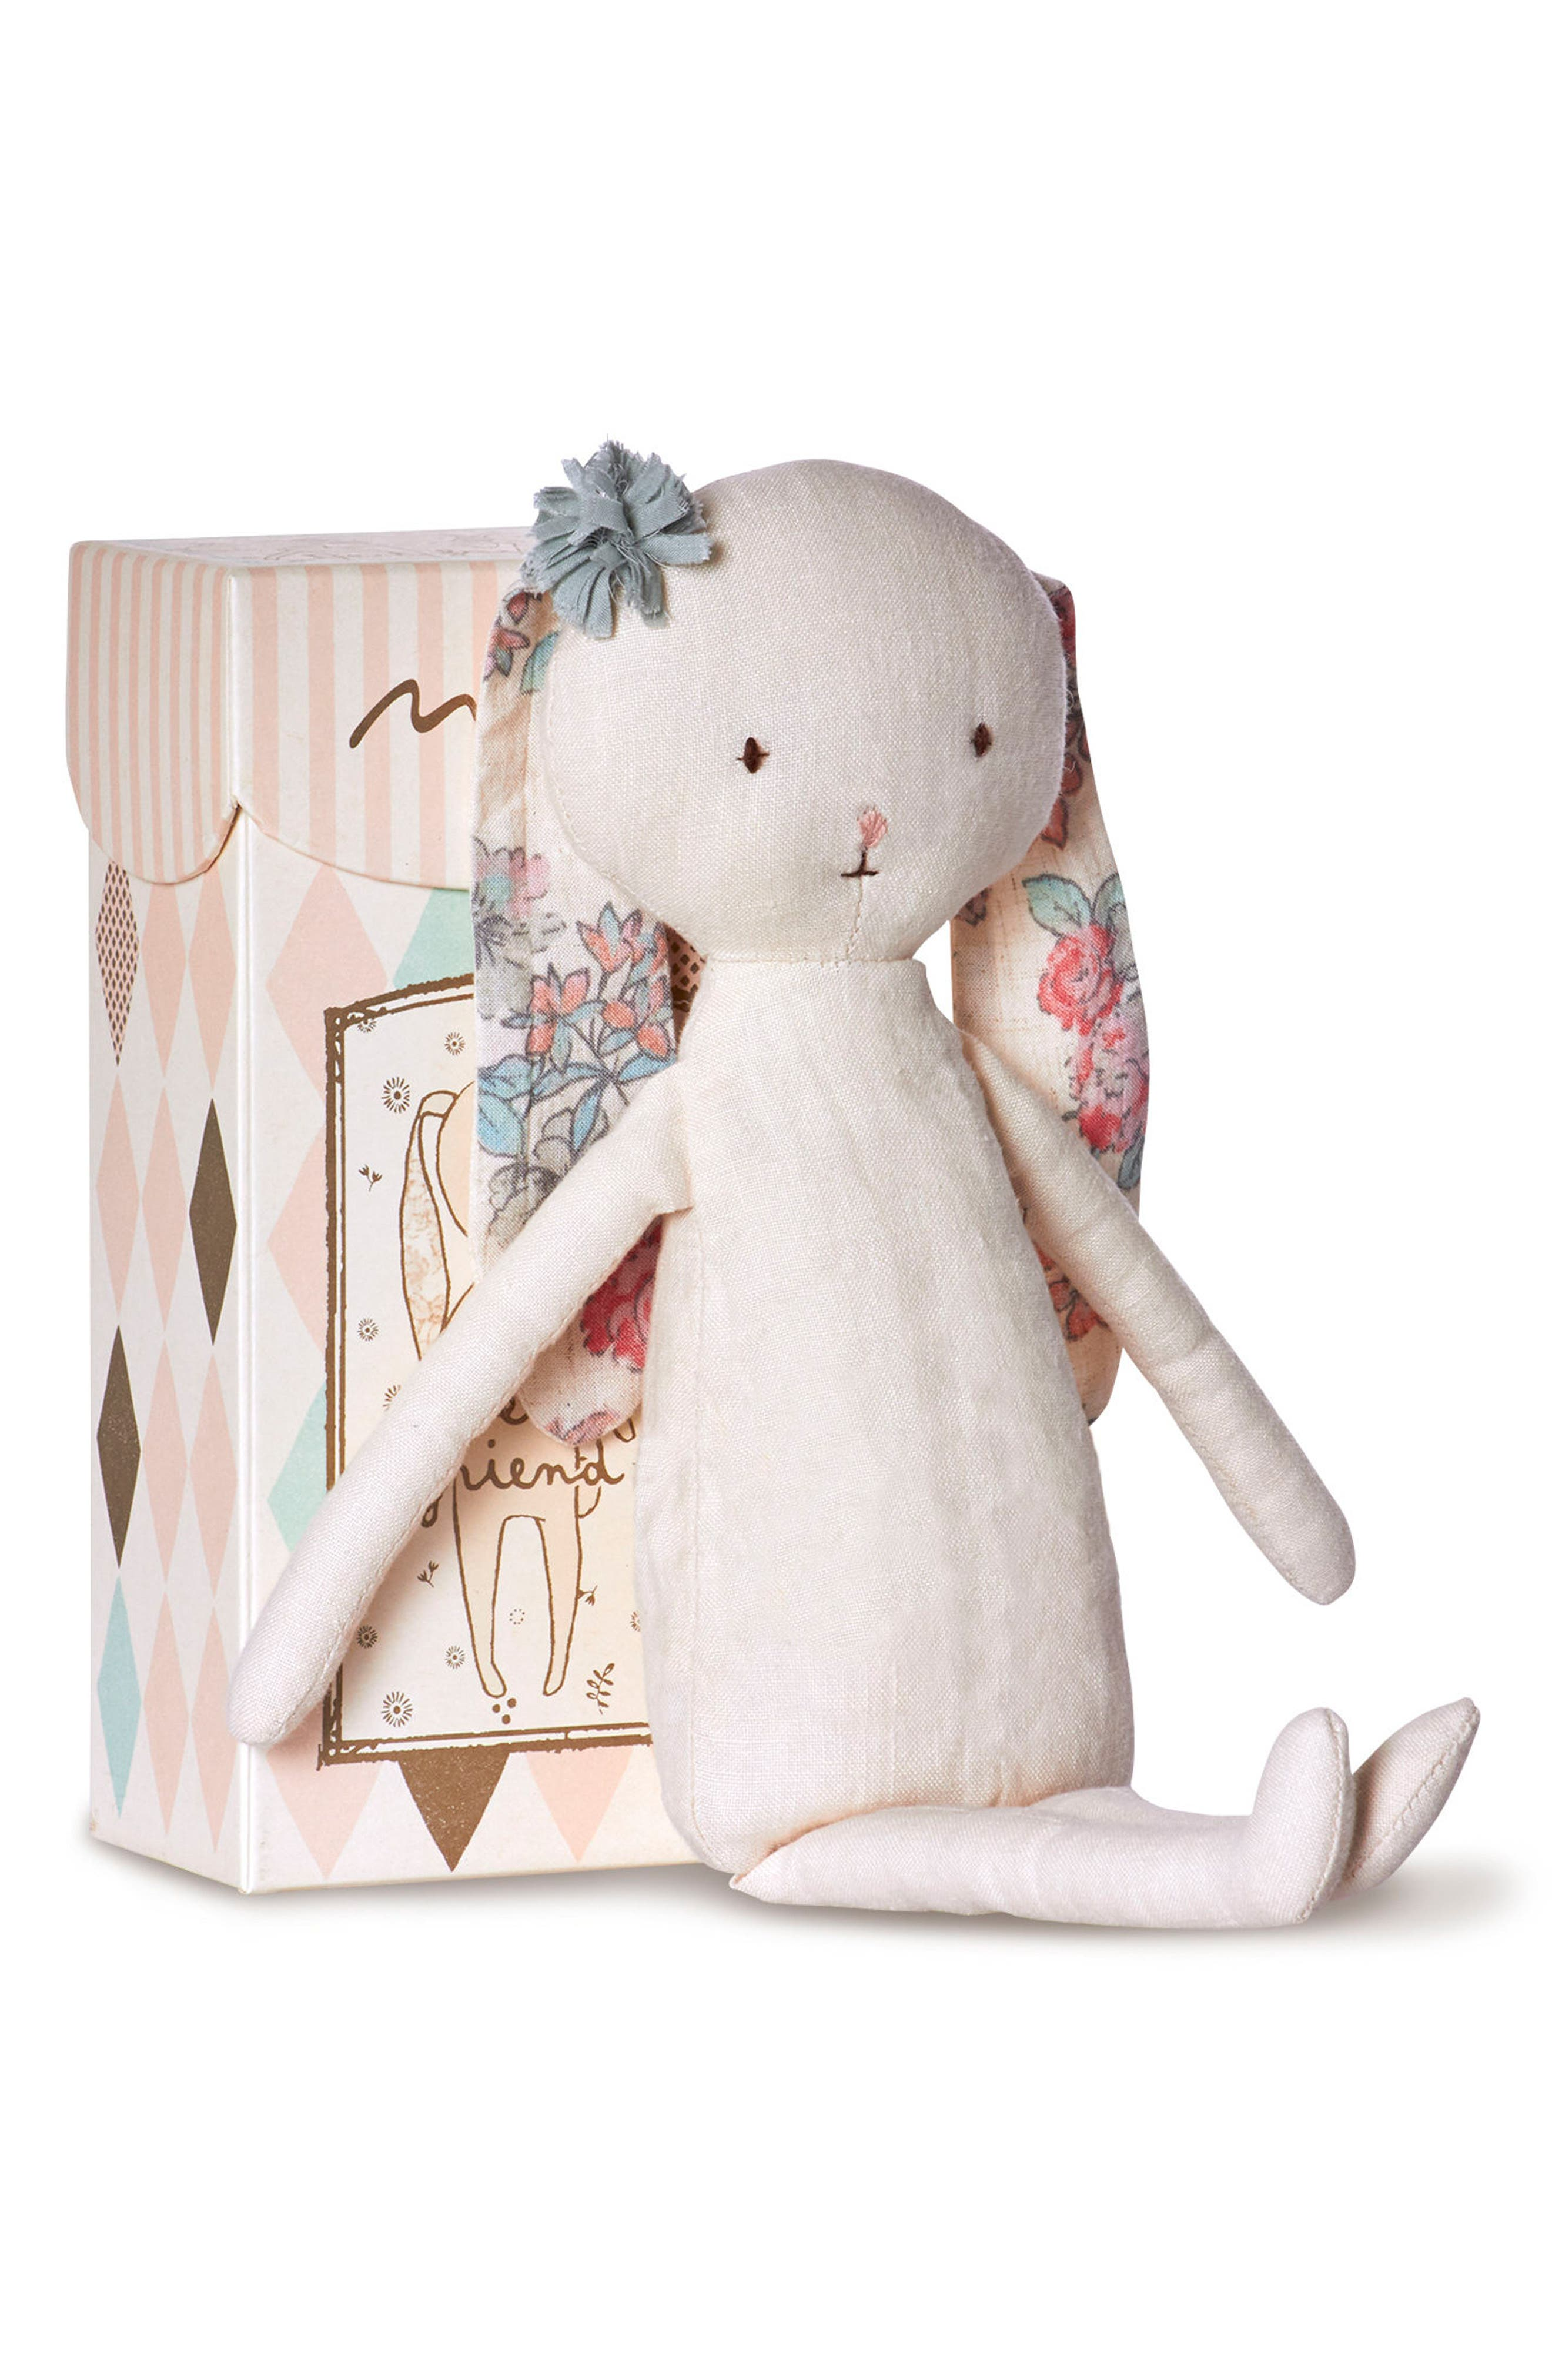 Best Friends Bunny Stuffed Animal,                             Alternate thumbnail 2, color,                             Ivory